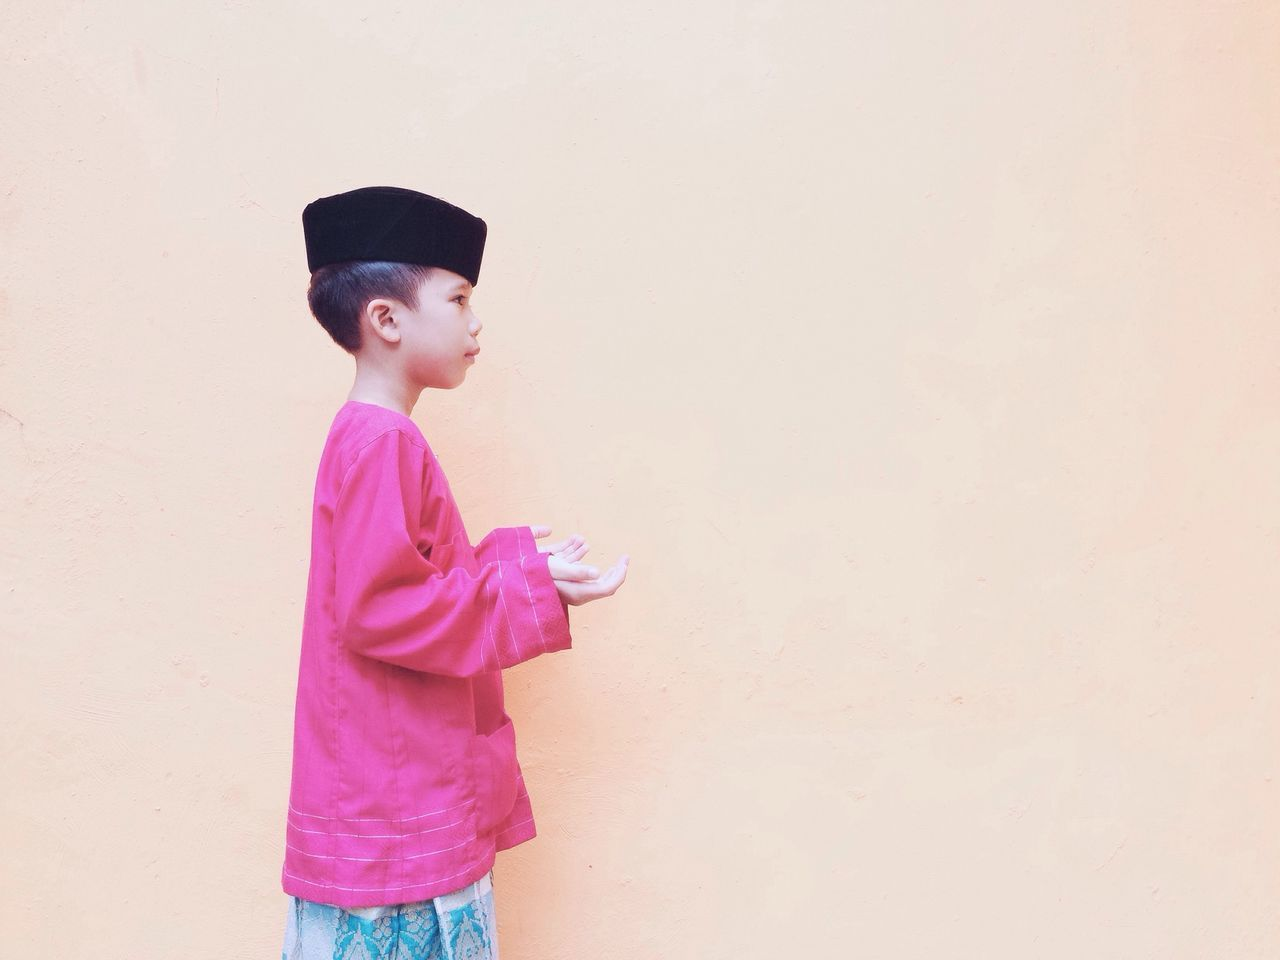 Pastel Power Minimalism Minimalobsession Life Young Man Teen Traditional Costume Eye4photography  IPhoneography Showcase March Millennial Pink